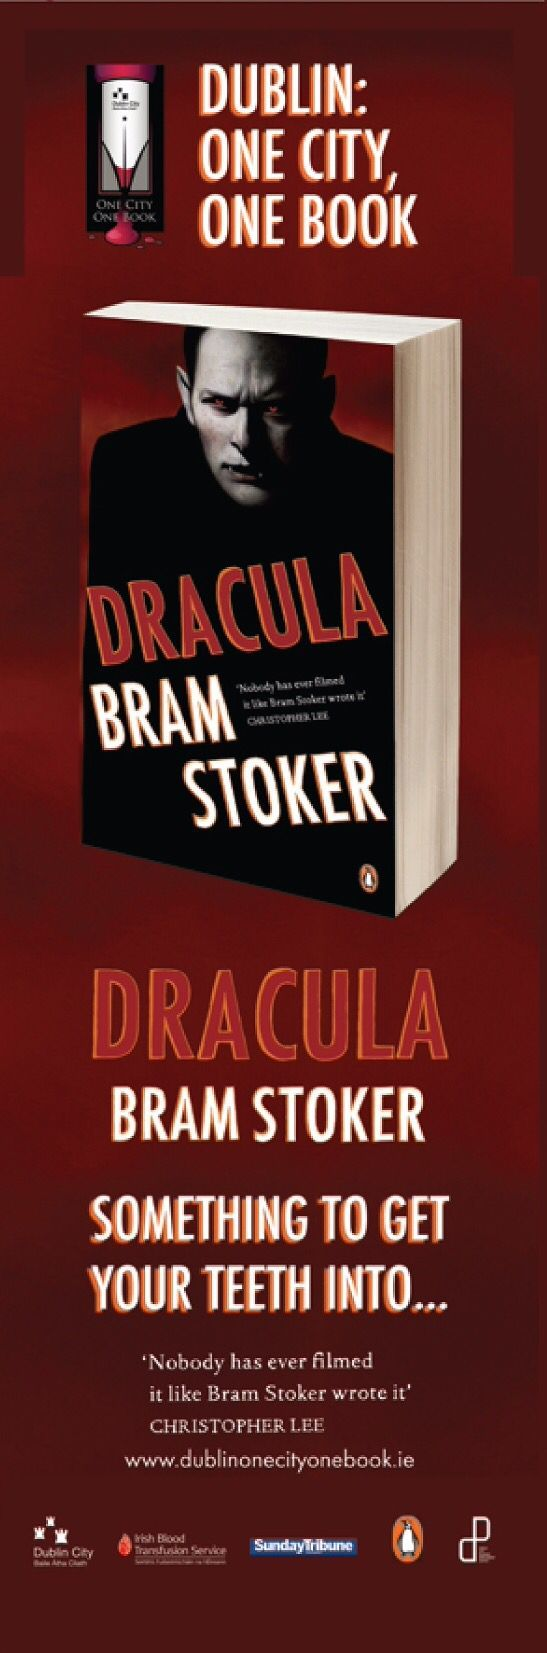 Dublin City Council's Lamppost Banners for One City, One Book 2009 -- 'Dracula', Bram Stoker #civicmedia2009